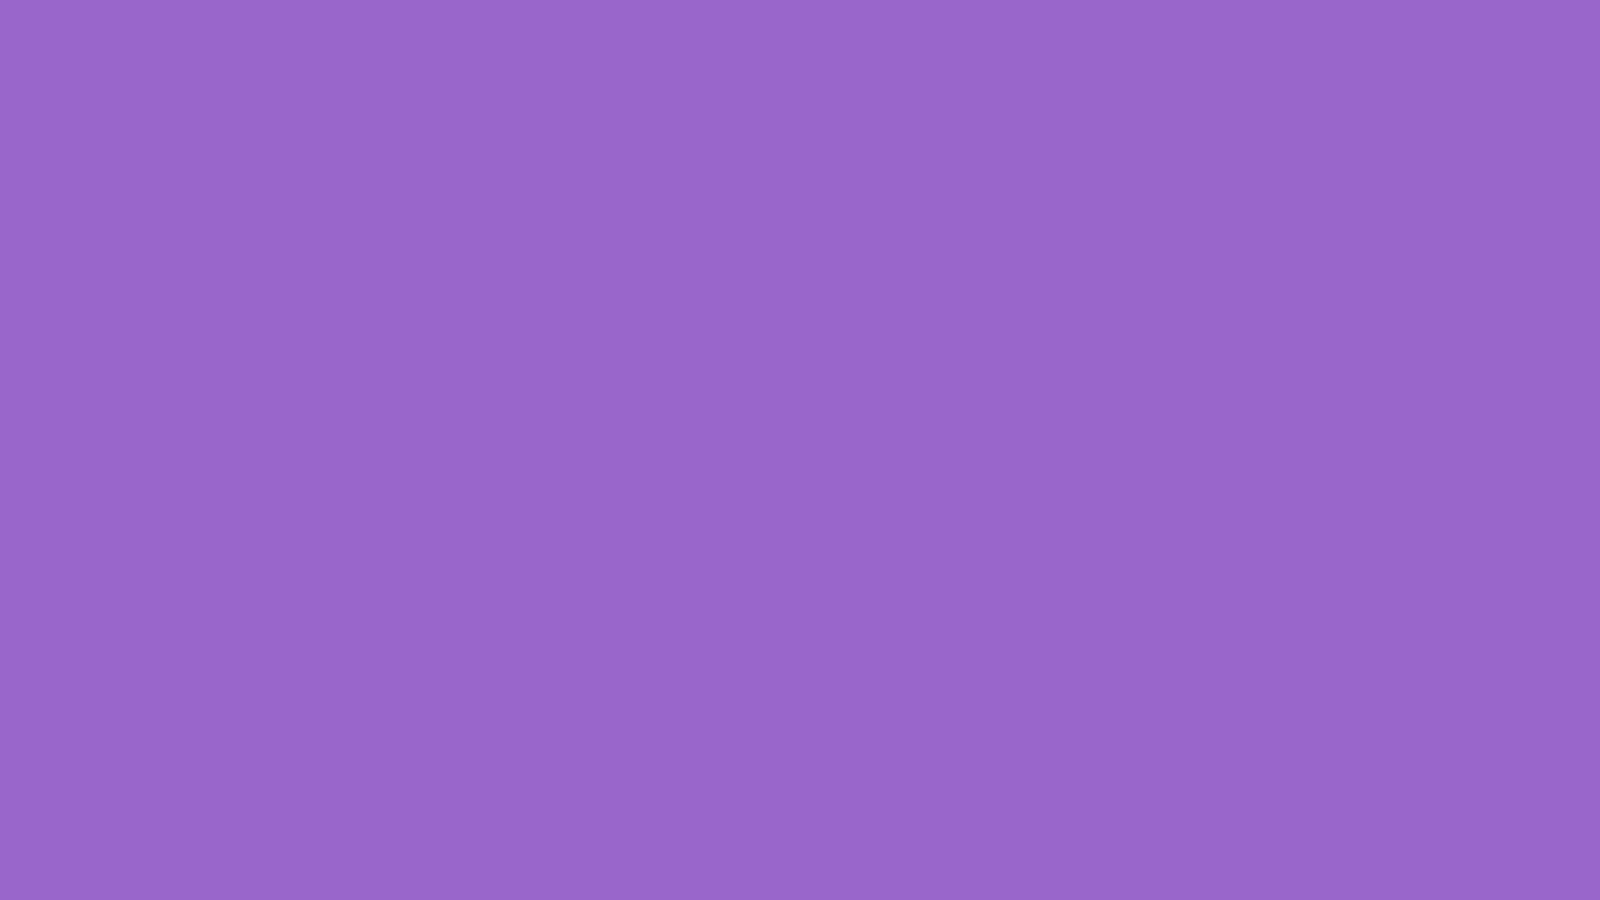 1600x900 Amethyst Solid Color Background